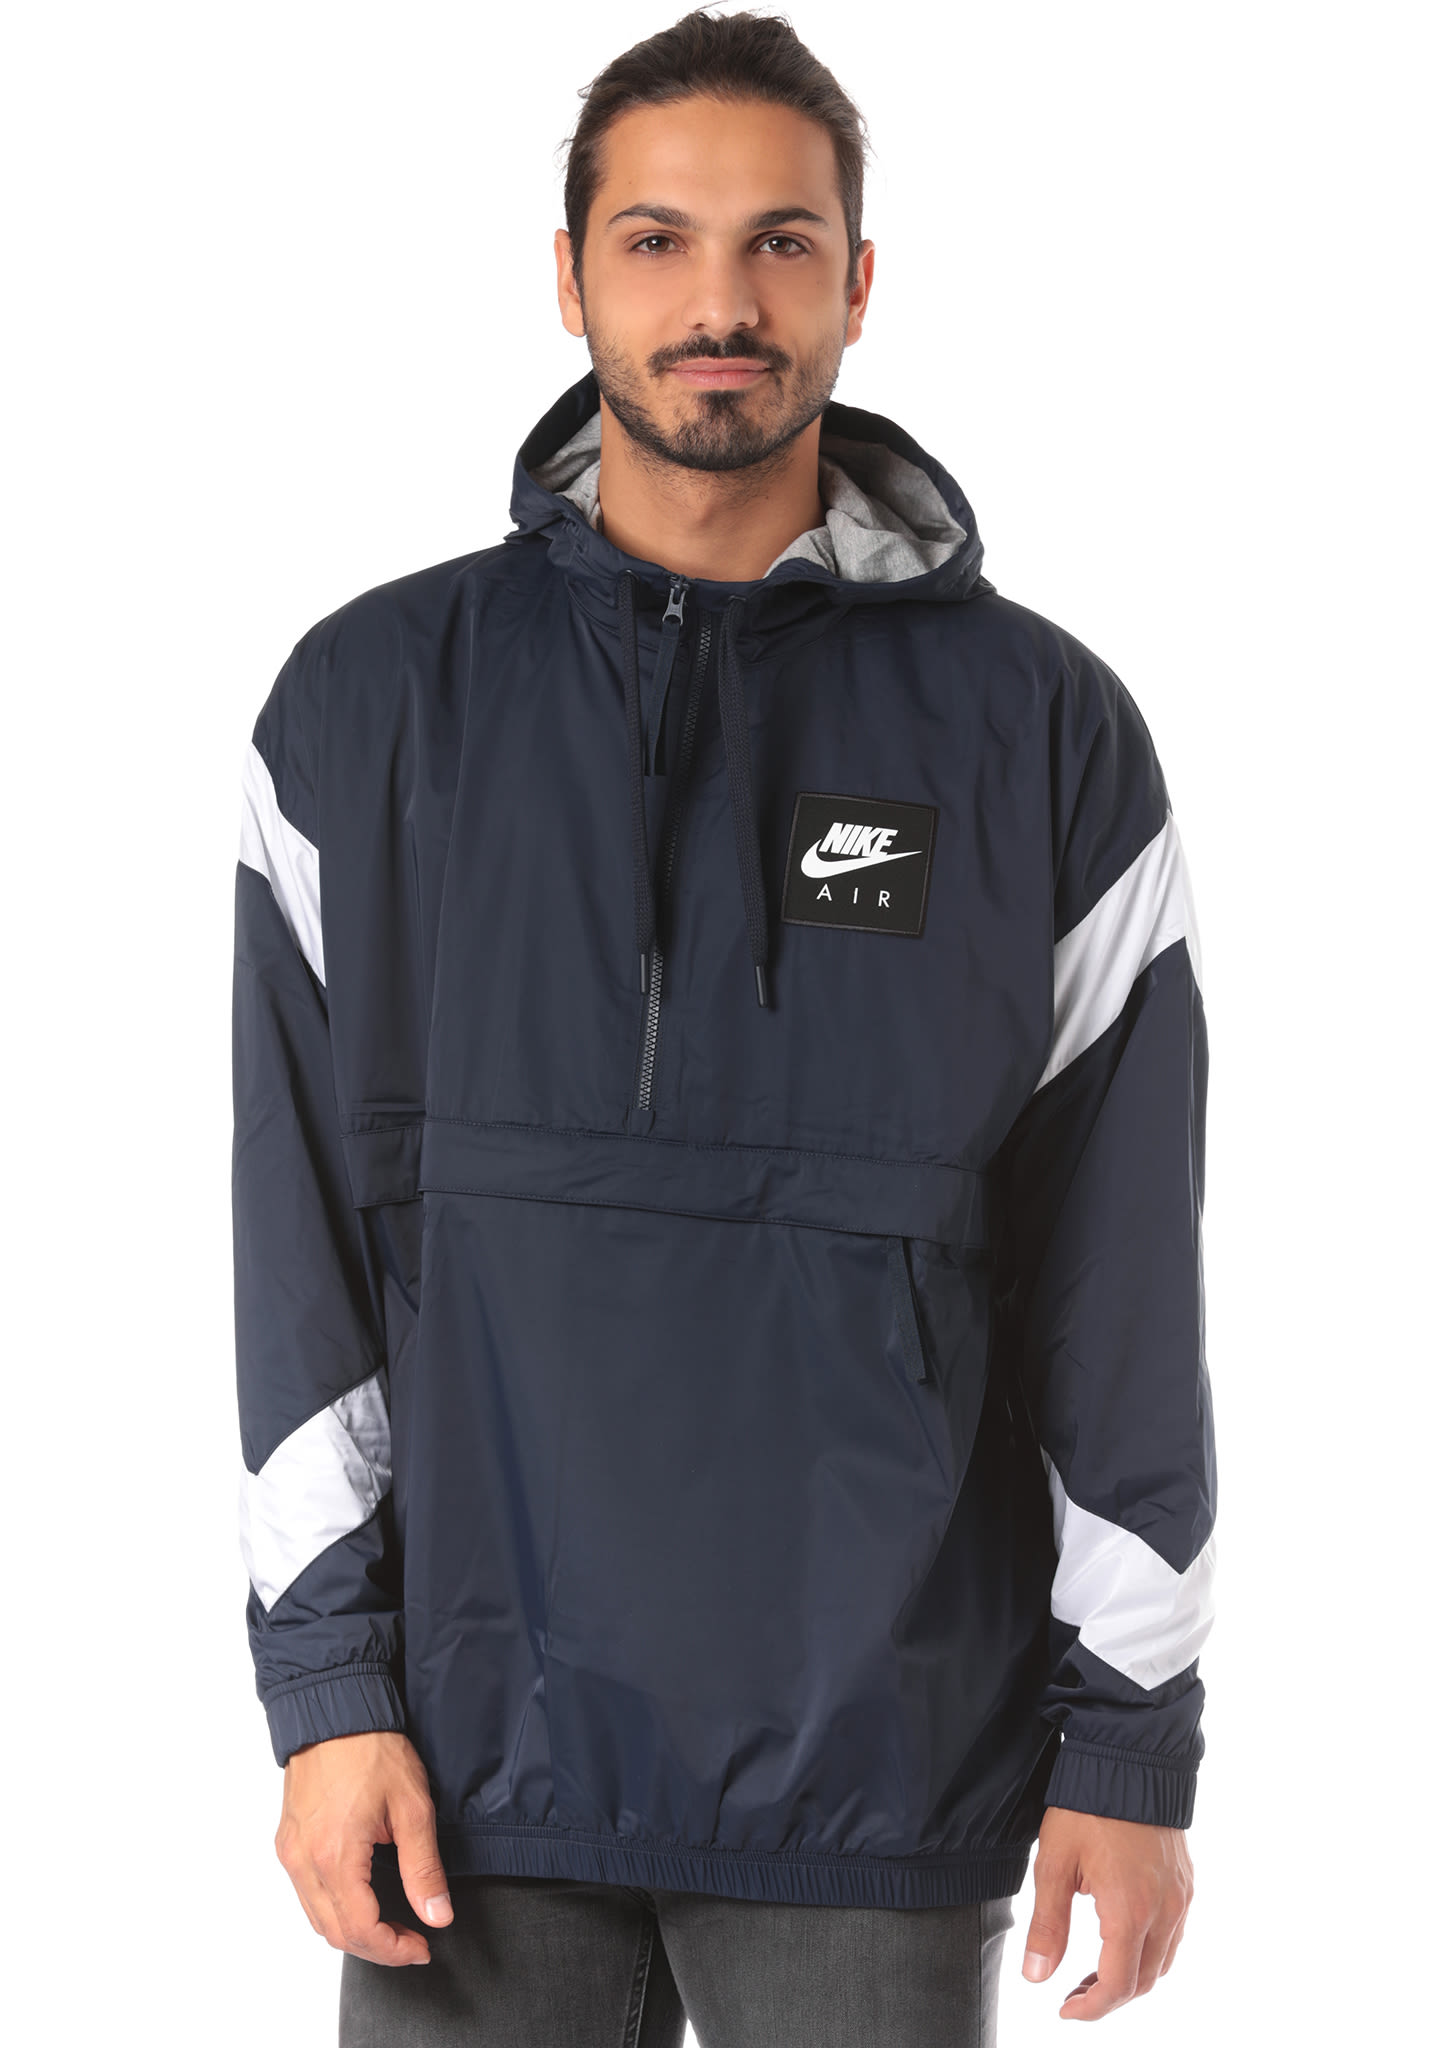 55940fdedd21 NIKE SPORTSWEAR Air - Jacket for Men - Blue - Planet Sports